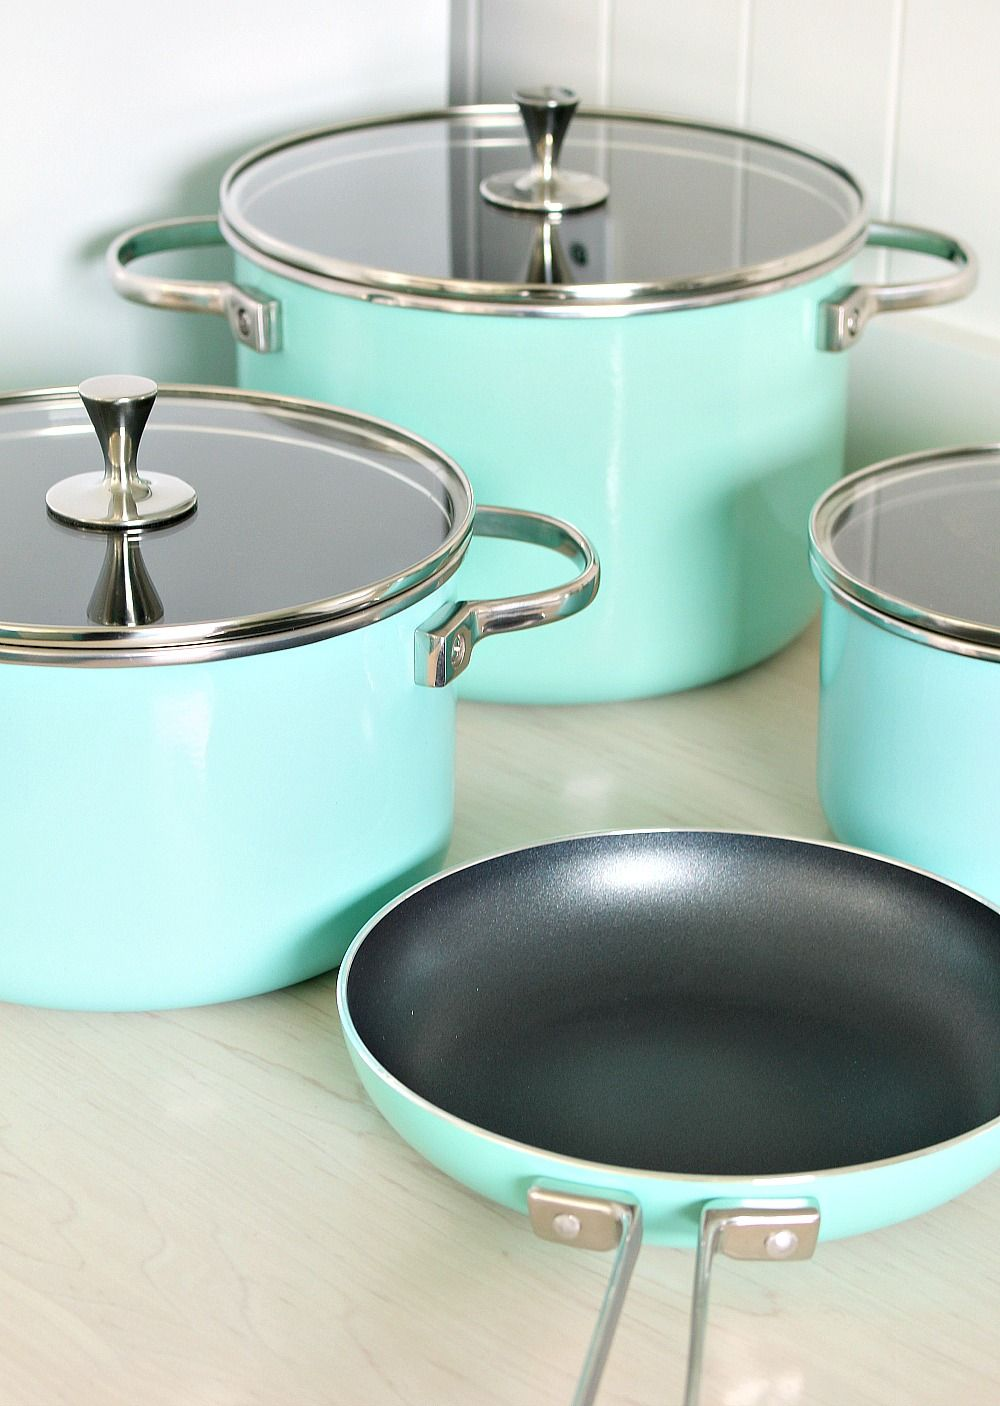 The Kitchen Needed More Turquoise | Turquoise Pots and Pans | Dans le Lakehouse